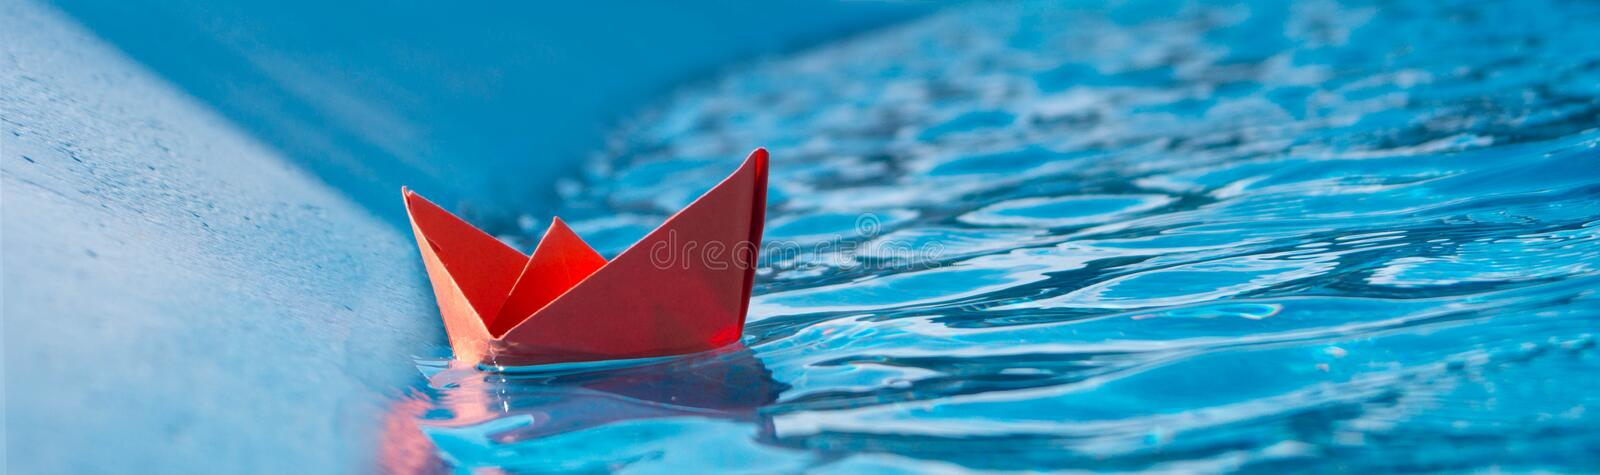 Paper ship blue and orange decorative background for travel stock image